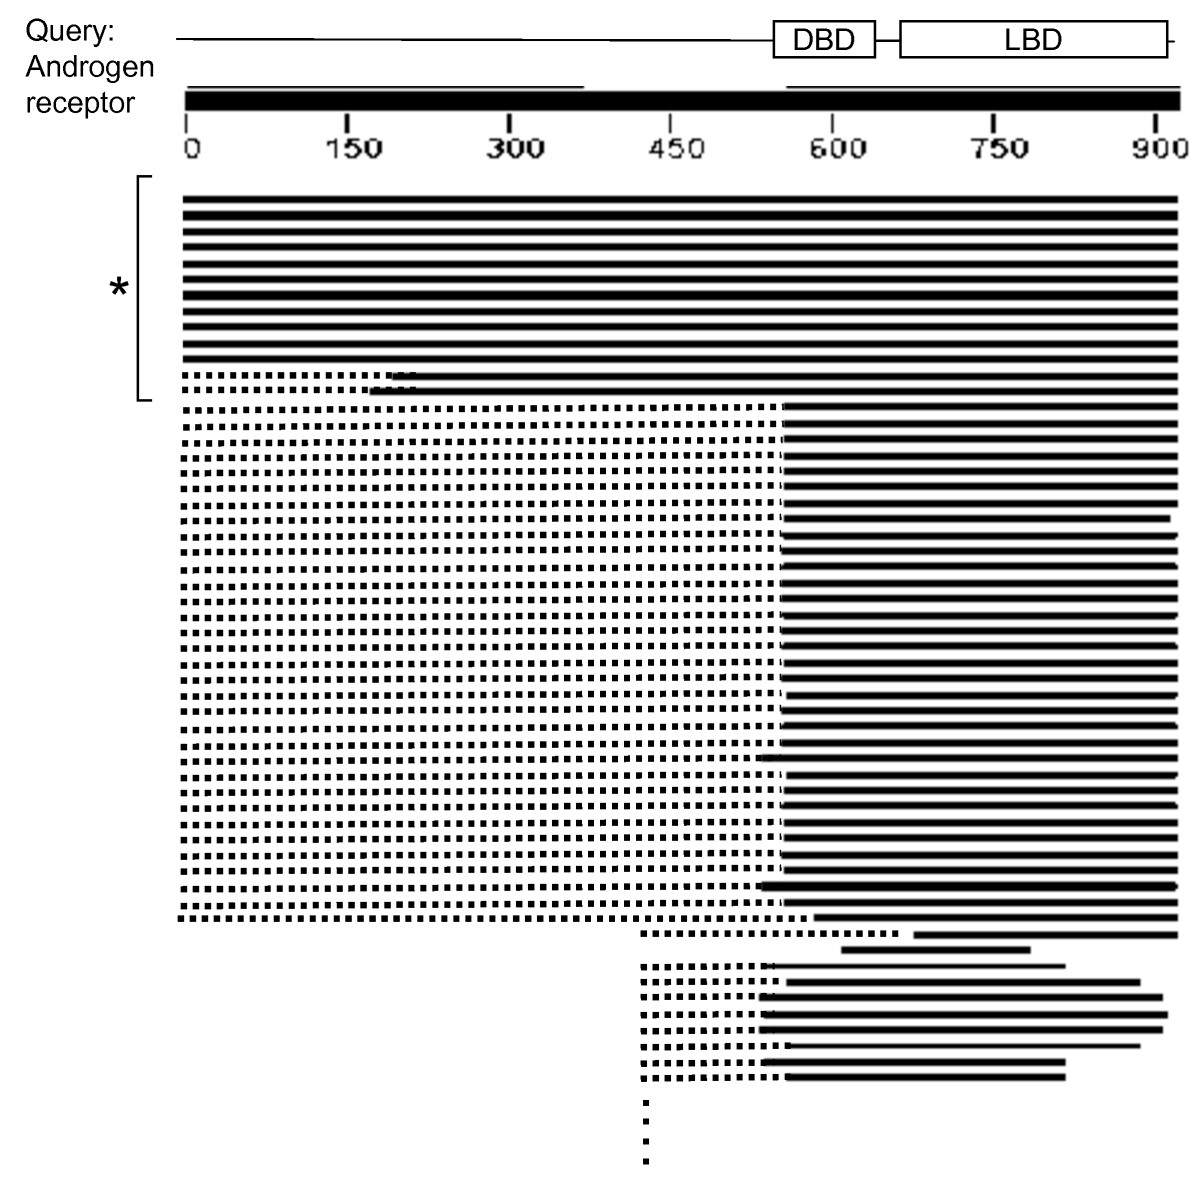 https://static-content.springer.com/image/art%3A10.1186%2F1472-6807-9-26/MediaObjects/12900_2009_Article_246_Fig1_HTML.jpg